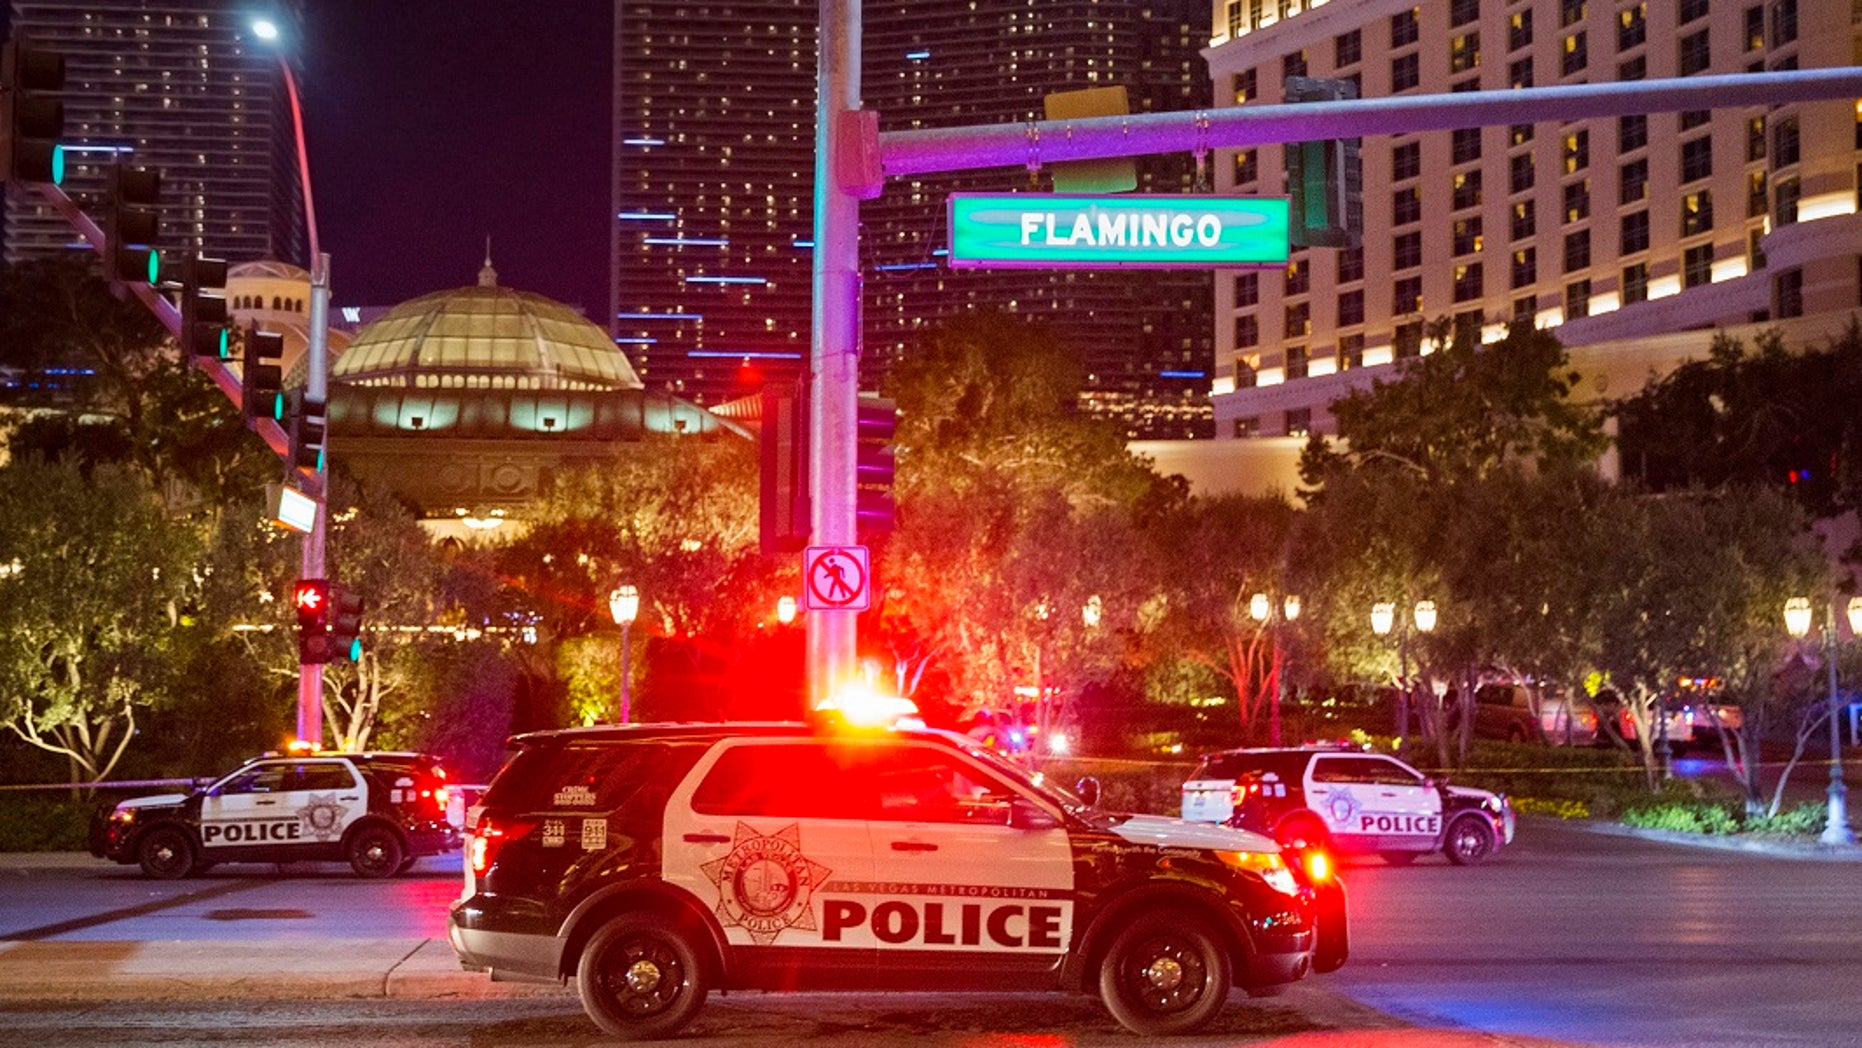 Police respond to an officer-involved shooting in front of Bellagio on Friday, March 15, 2019, in Las Vegas. (Associated Press)